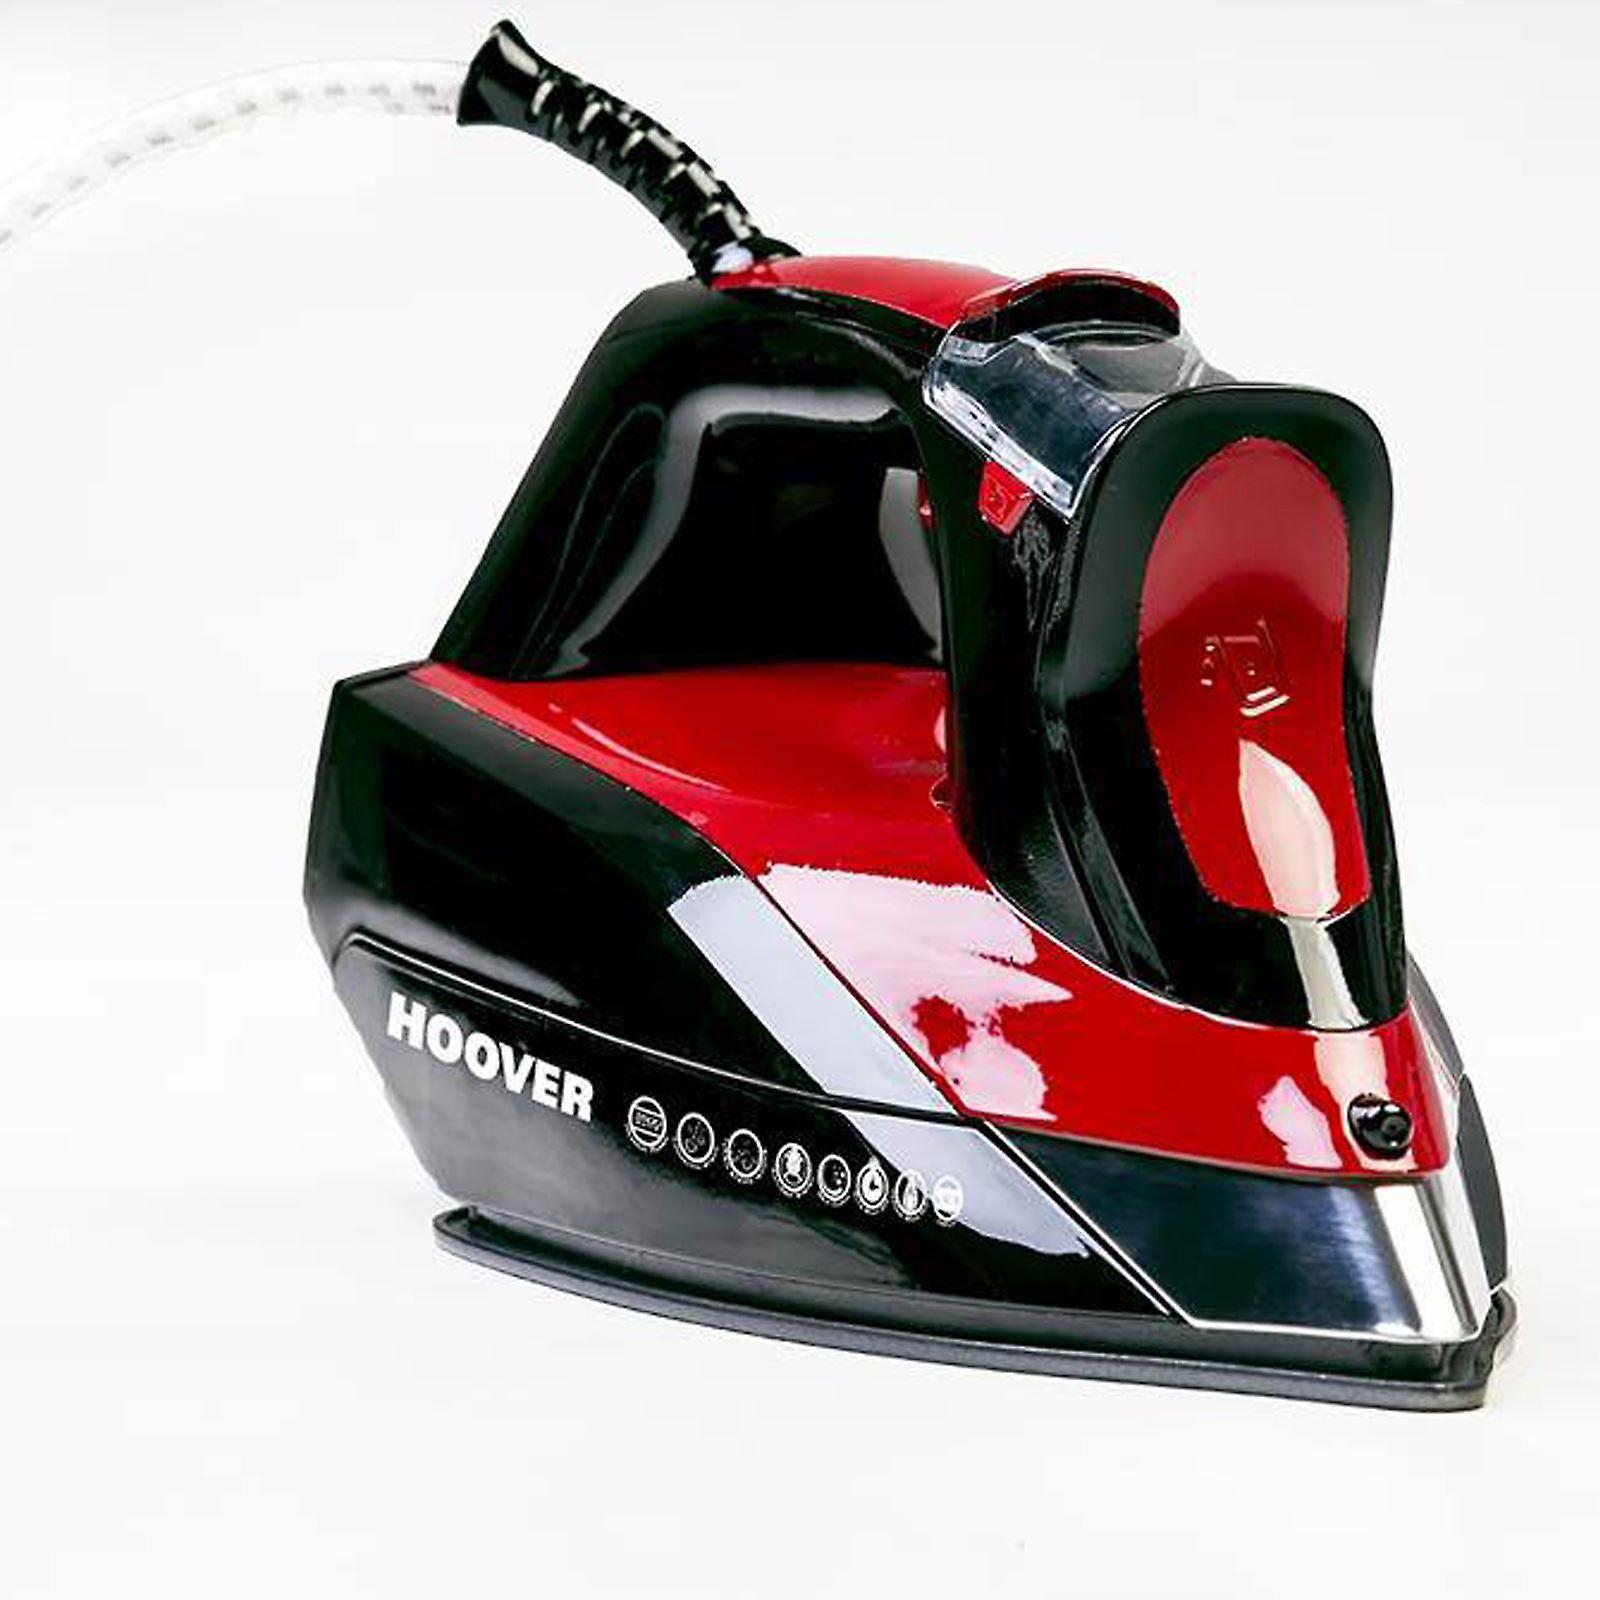 Hoover TID2500C IronJet Steam Iron 2500W